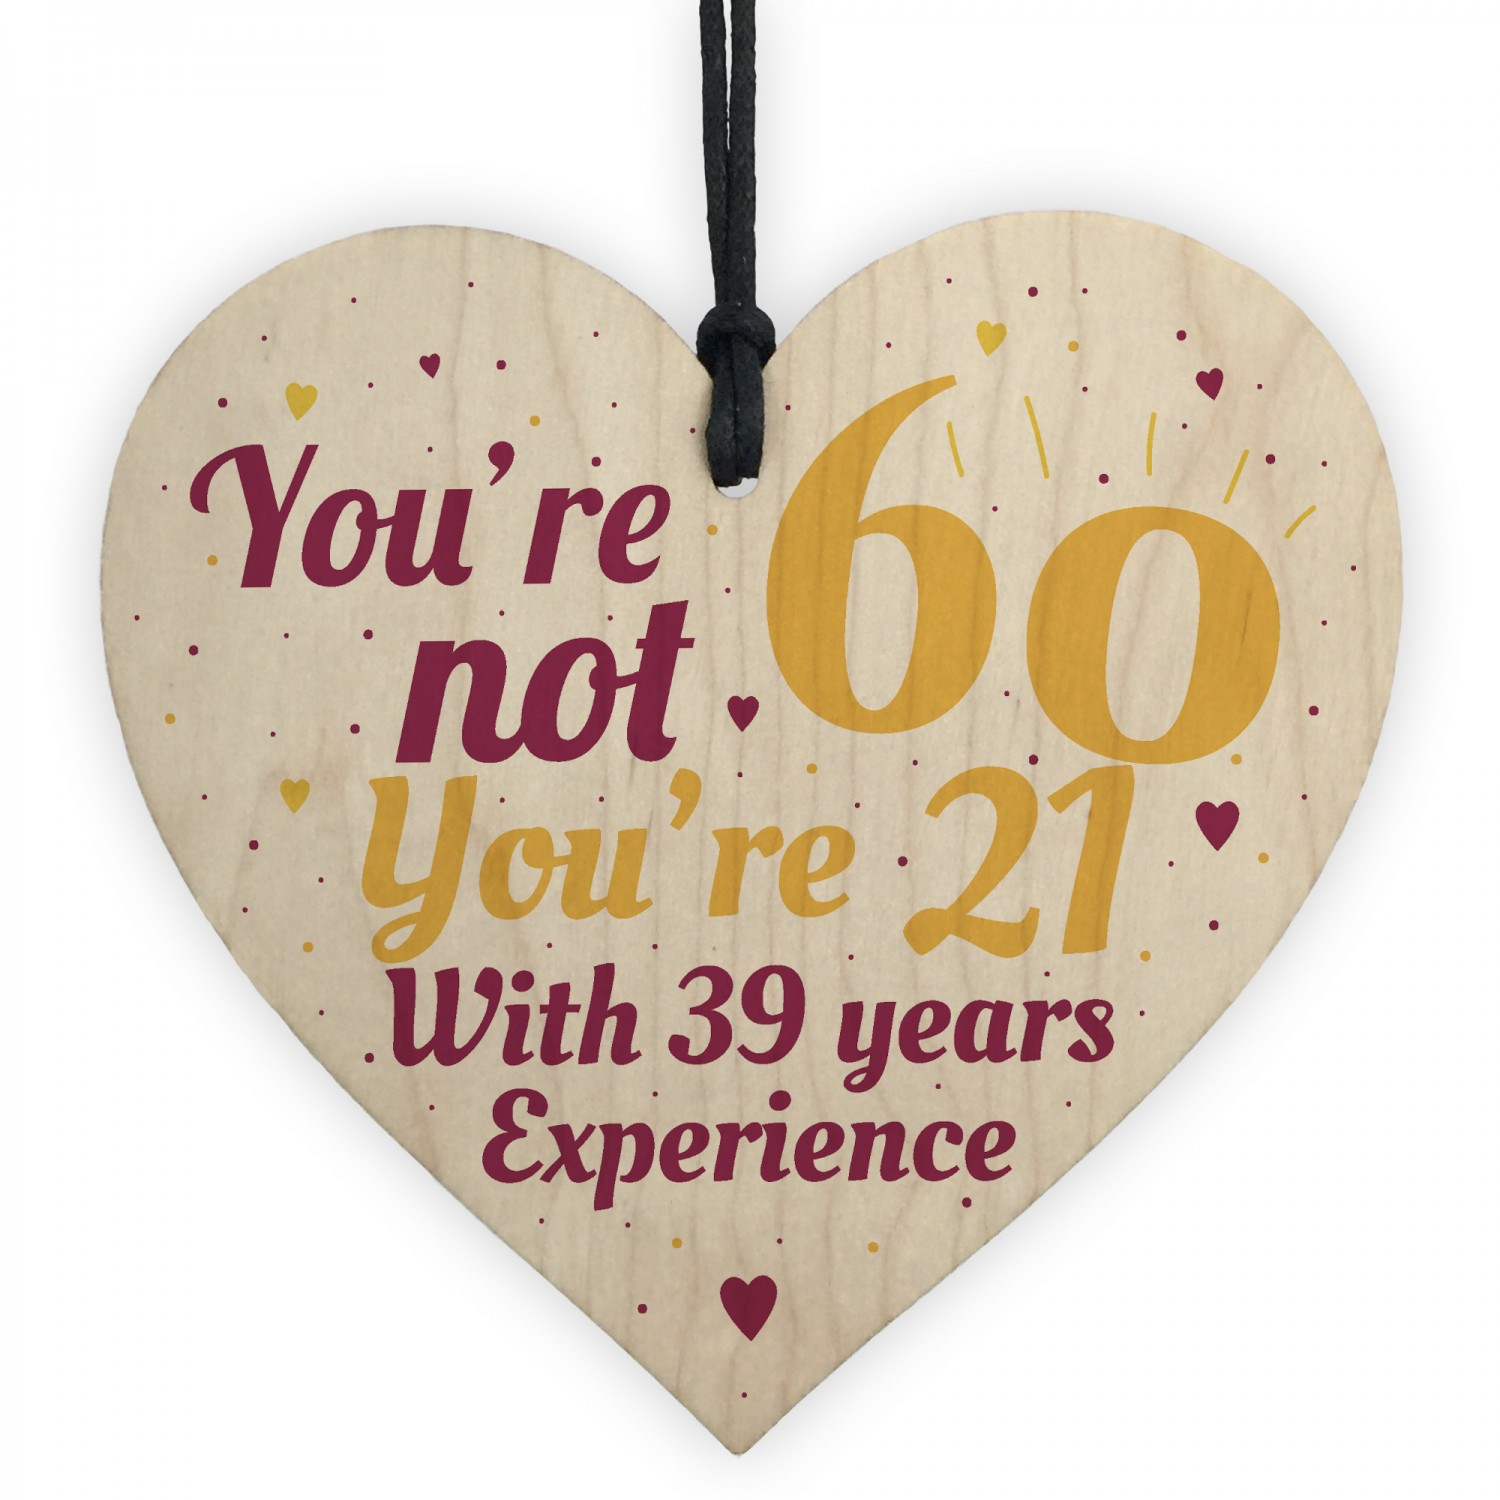 73ff1411b8 60th Birthday Gift Funny Wooden Heart Sign Gift For Friend Dad